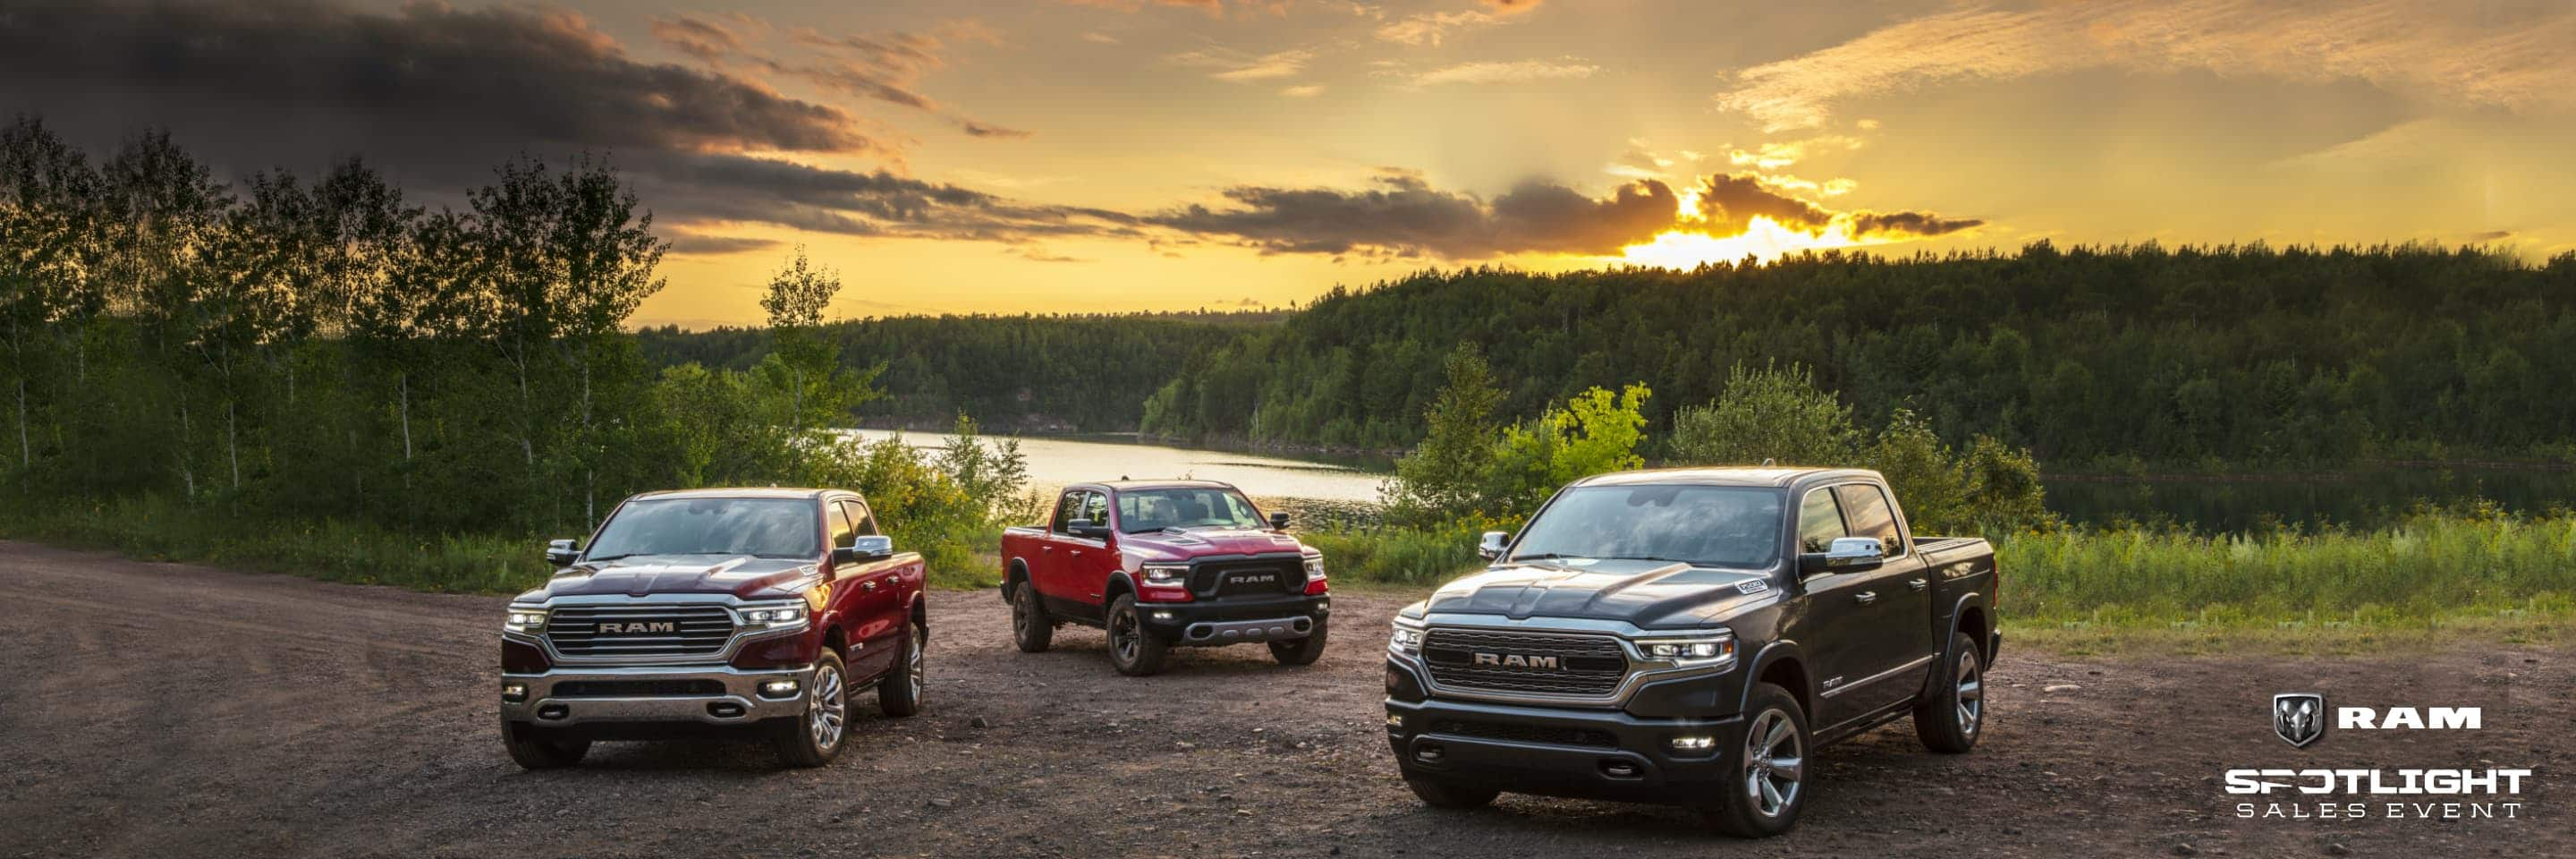 Three 2021 Ram 1500 models: a Limited Longhorn, Rebel and Limited parked beside a lake with the sun rising over a forest of trees in the background. Ram Spotlight Sales Event logo.